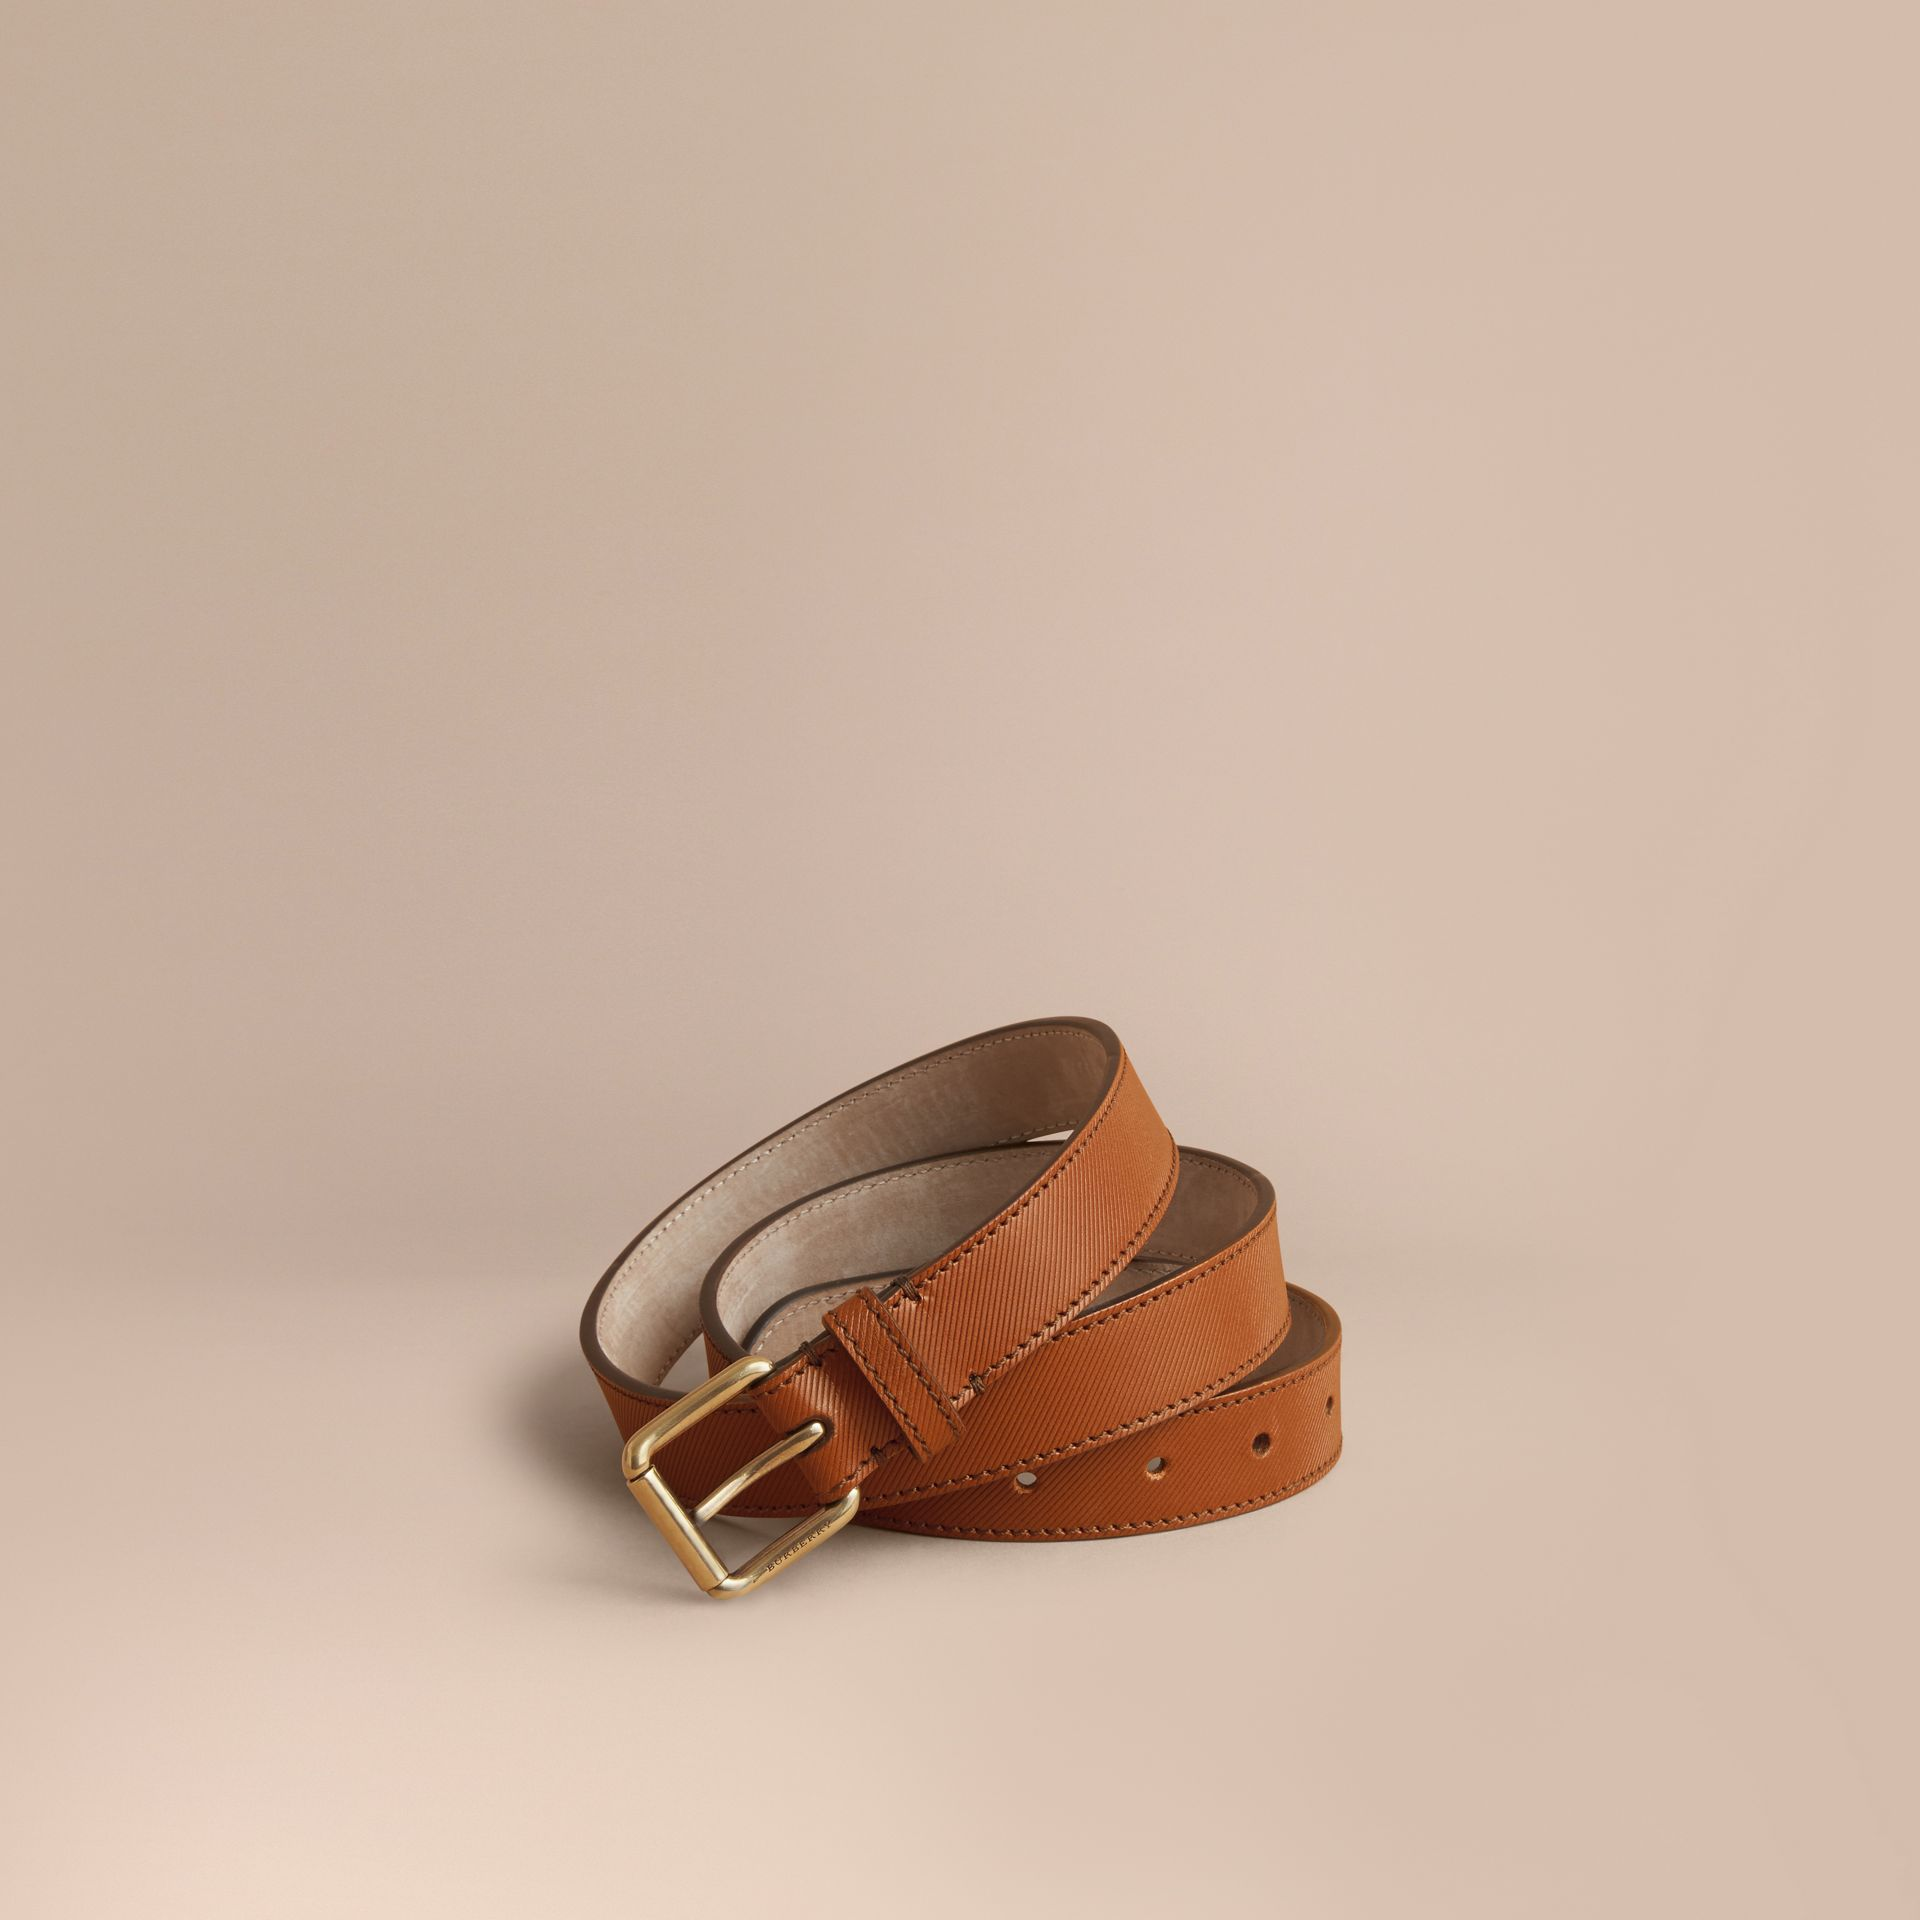 Trench Leather Belt in Tan - Men | Burberry - gallery image 1